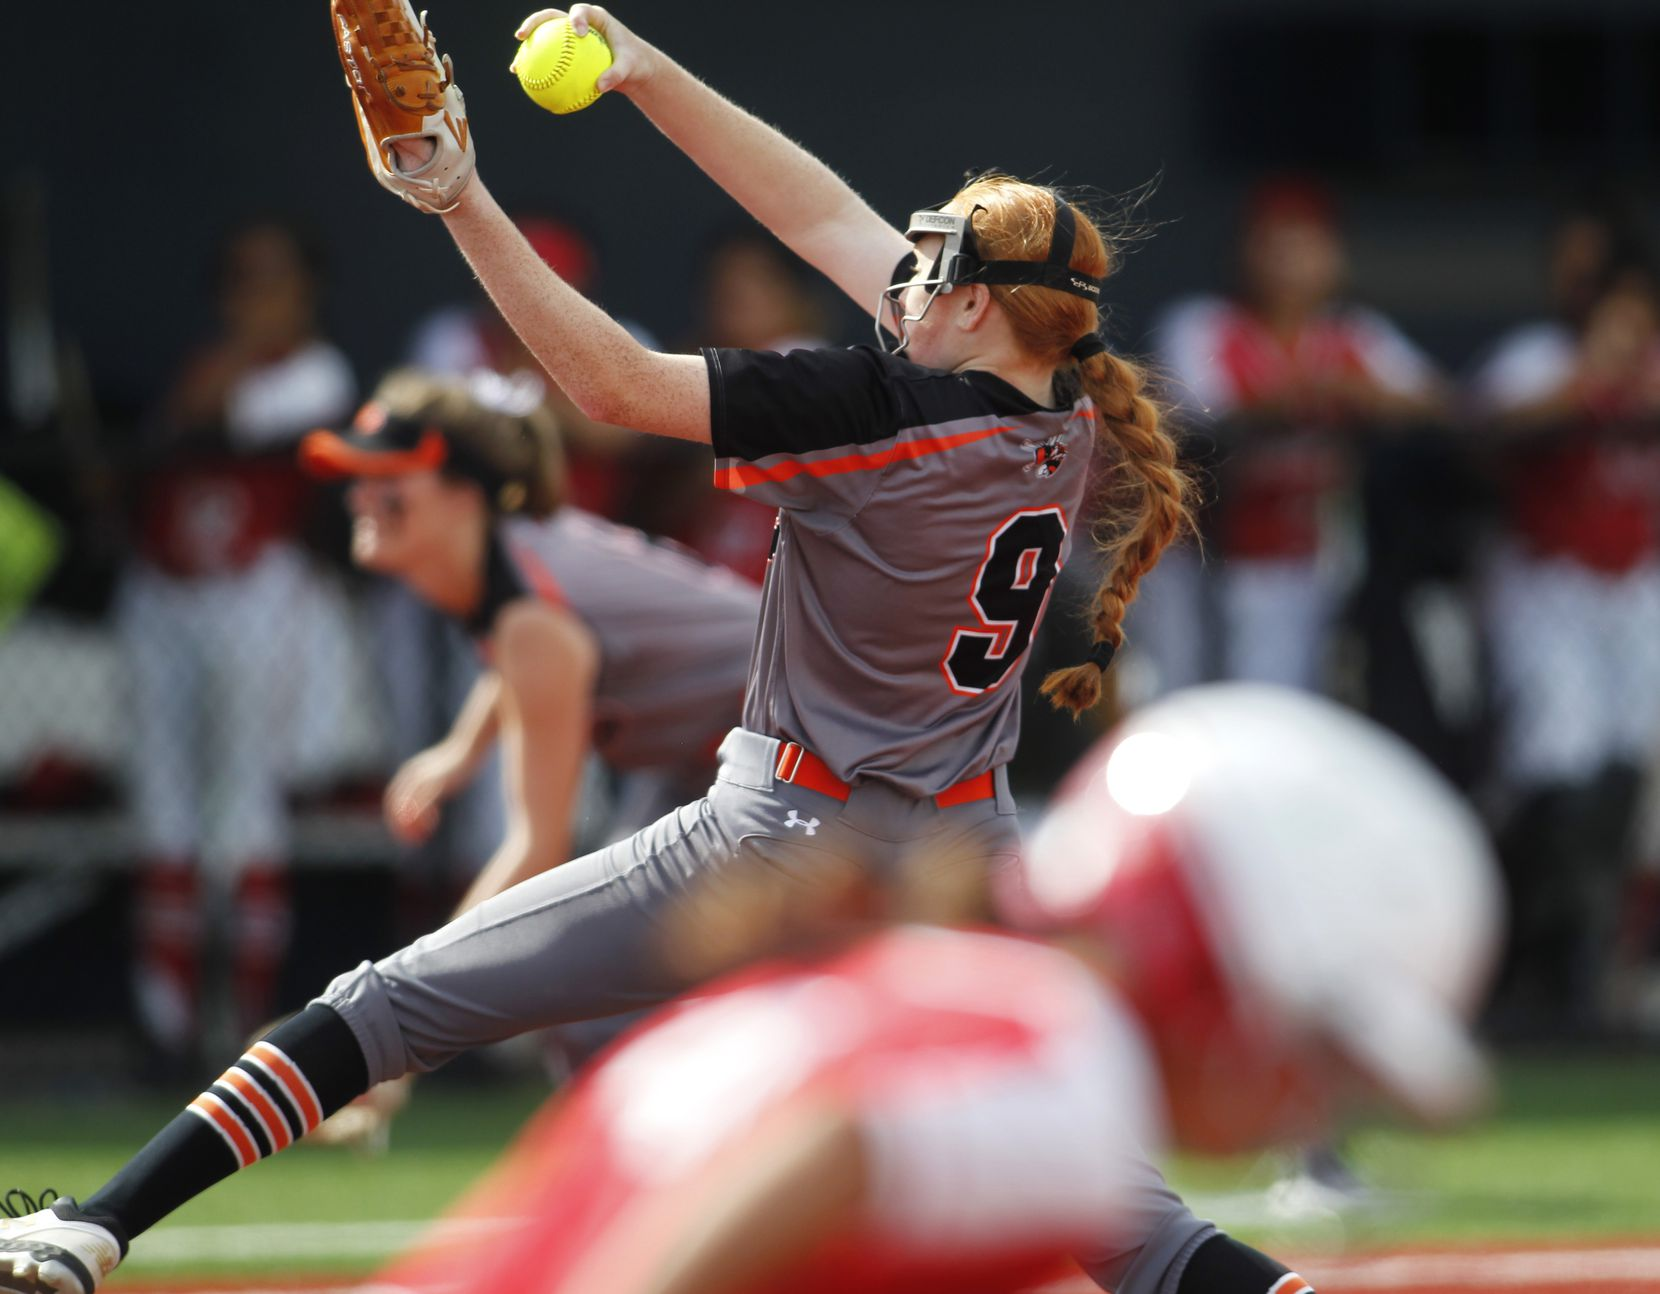 Rockwall pitcher Ainsley Pemberton (9) delivers a pitch to a Converse Judson batter during the bottom of the 4th inning of play. The two teams played their UIL 6A state softball semifinal game at Leander Glenn High School in Leander on June 4, 2021. (Steve Hamm/ Special Contributor)